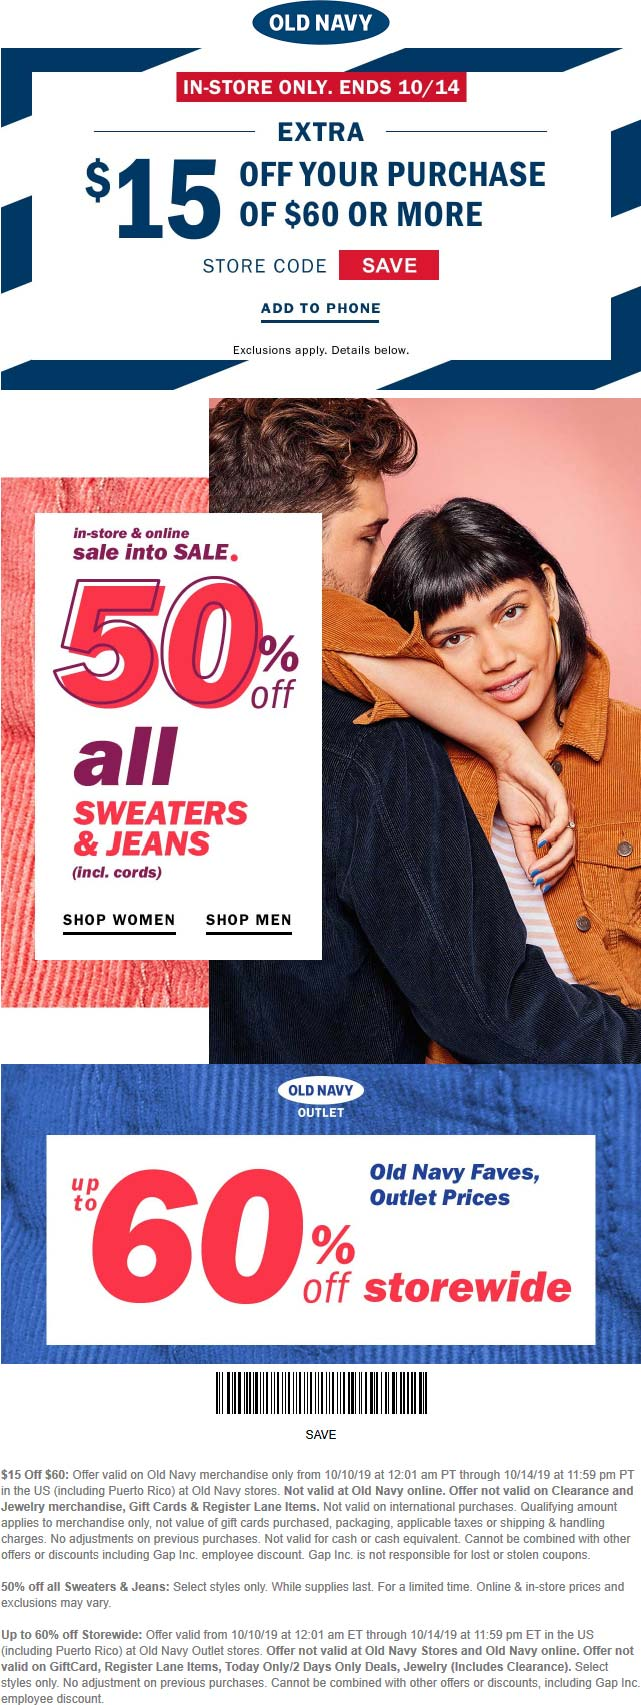 Old Navy Coupon February 2020 $15 off $60 & more at Old Navy